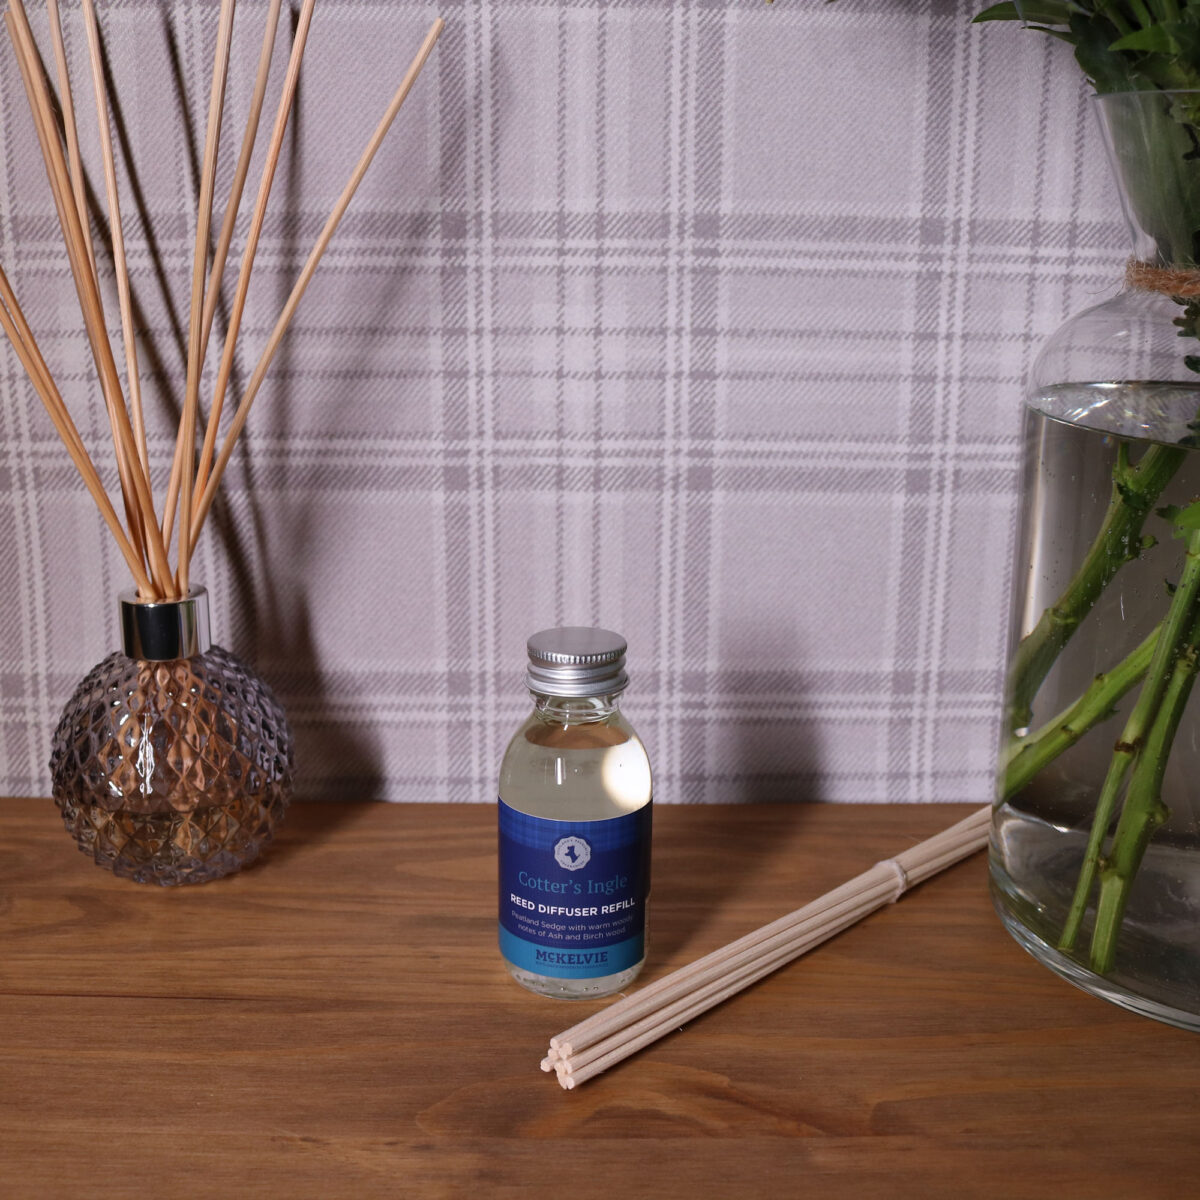 Cotters Ingle Reed Diffuser Refill